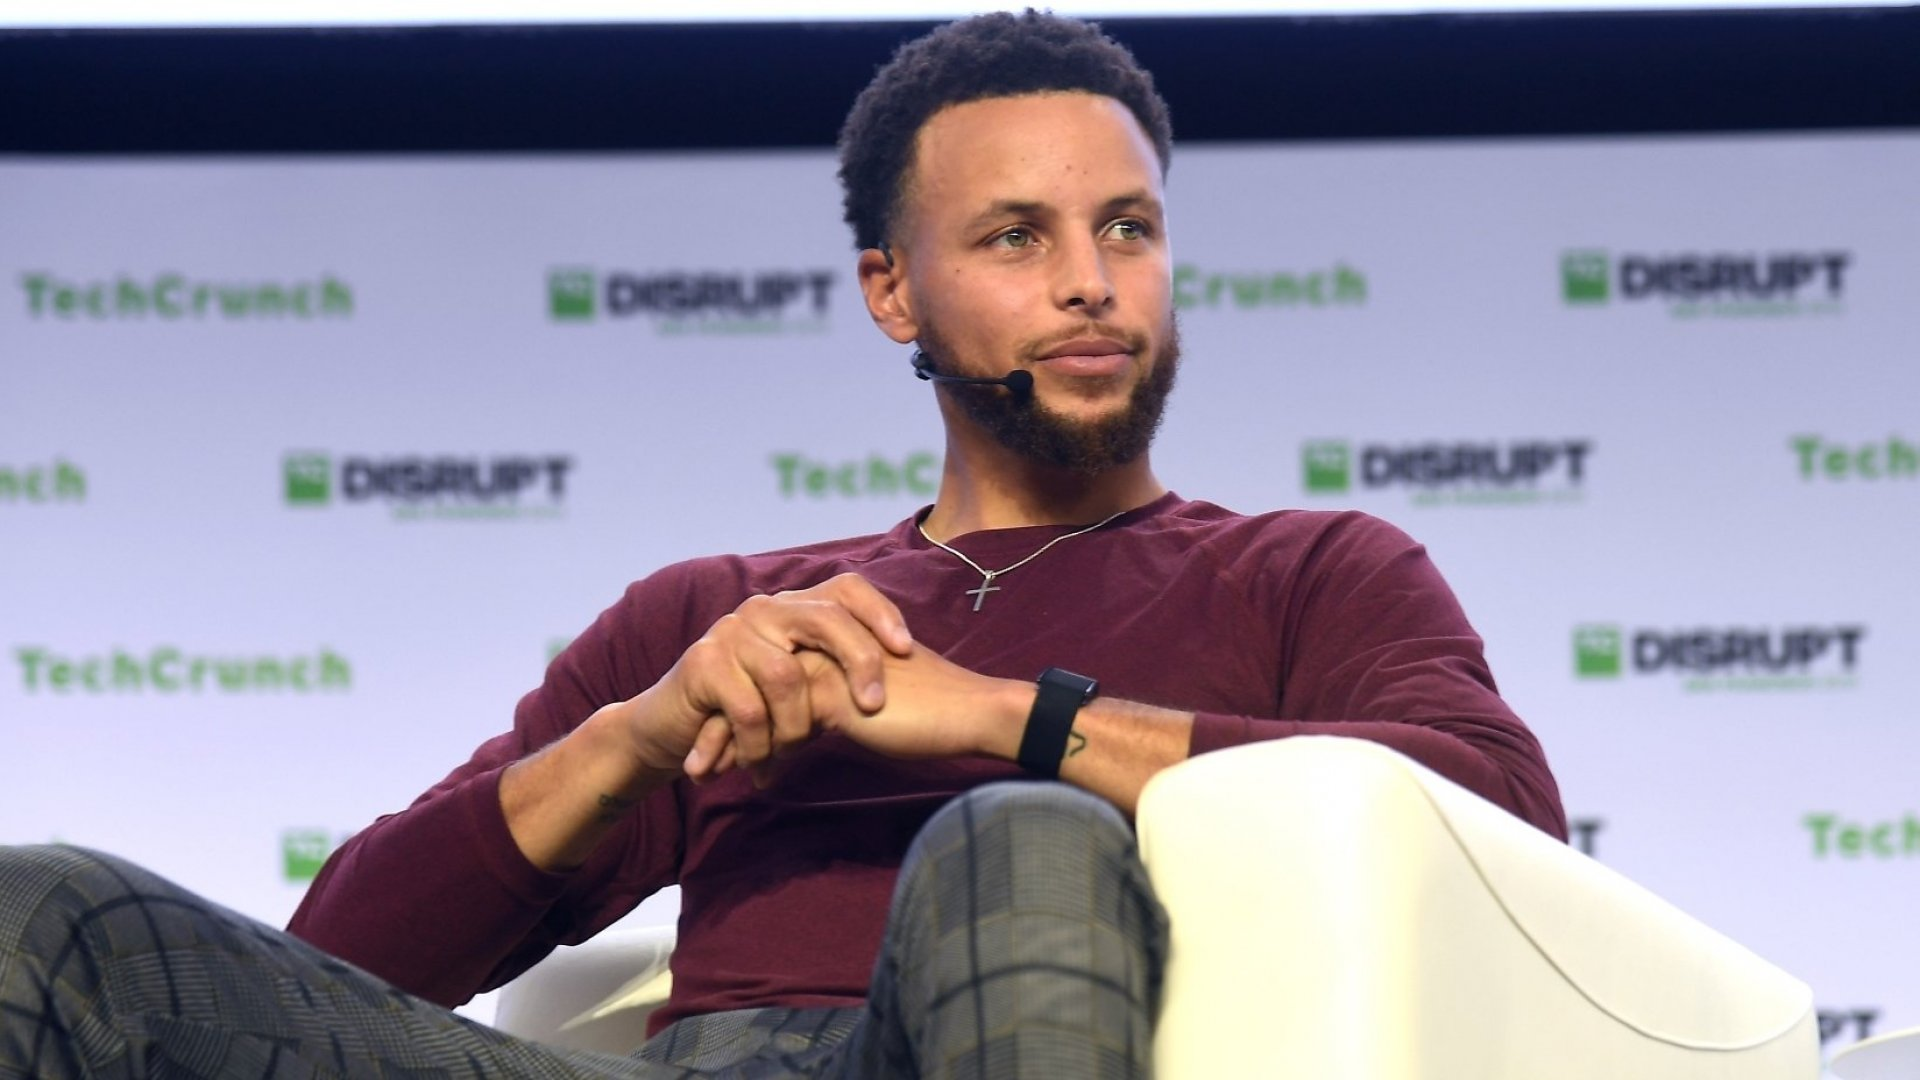 Stephen Curry Is Investing in Tech Companies. Here's How He's Winning With an Unconventional Approach to Entrepreneurship